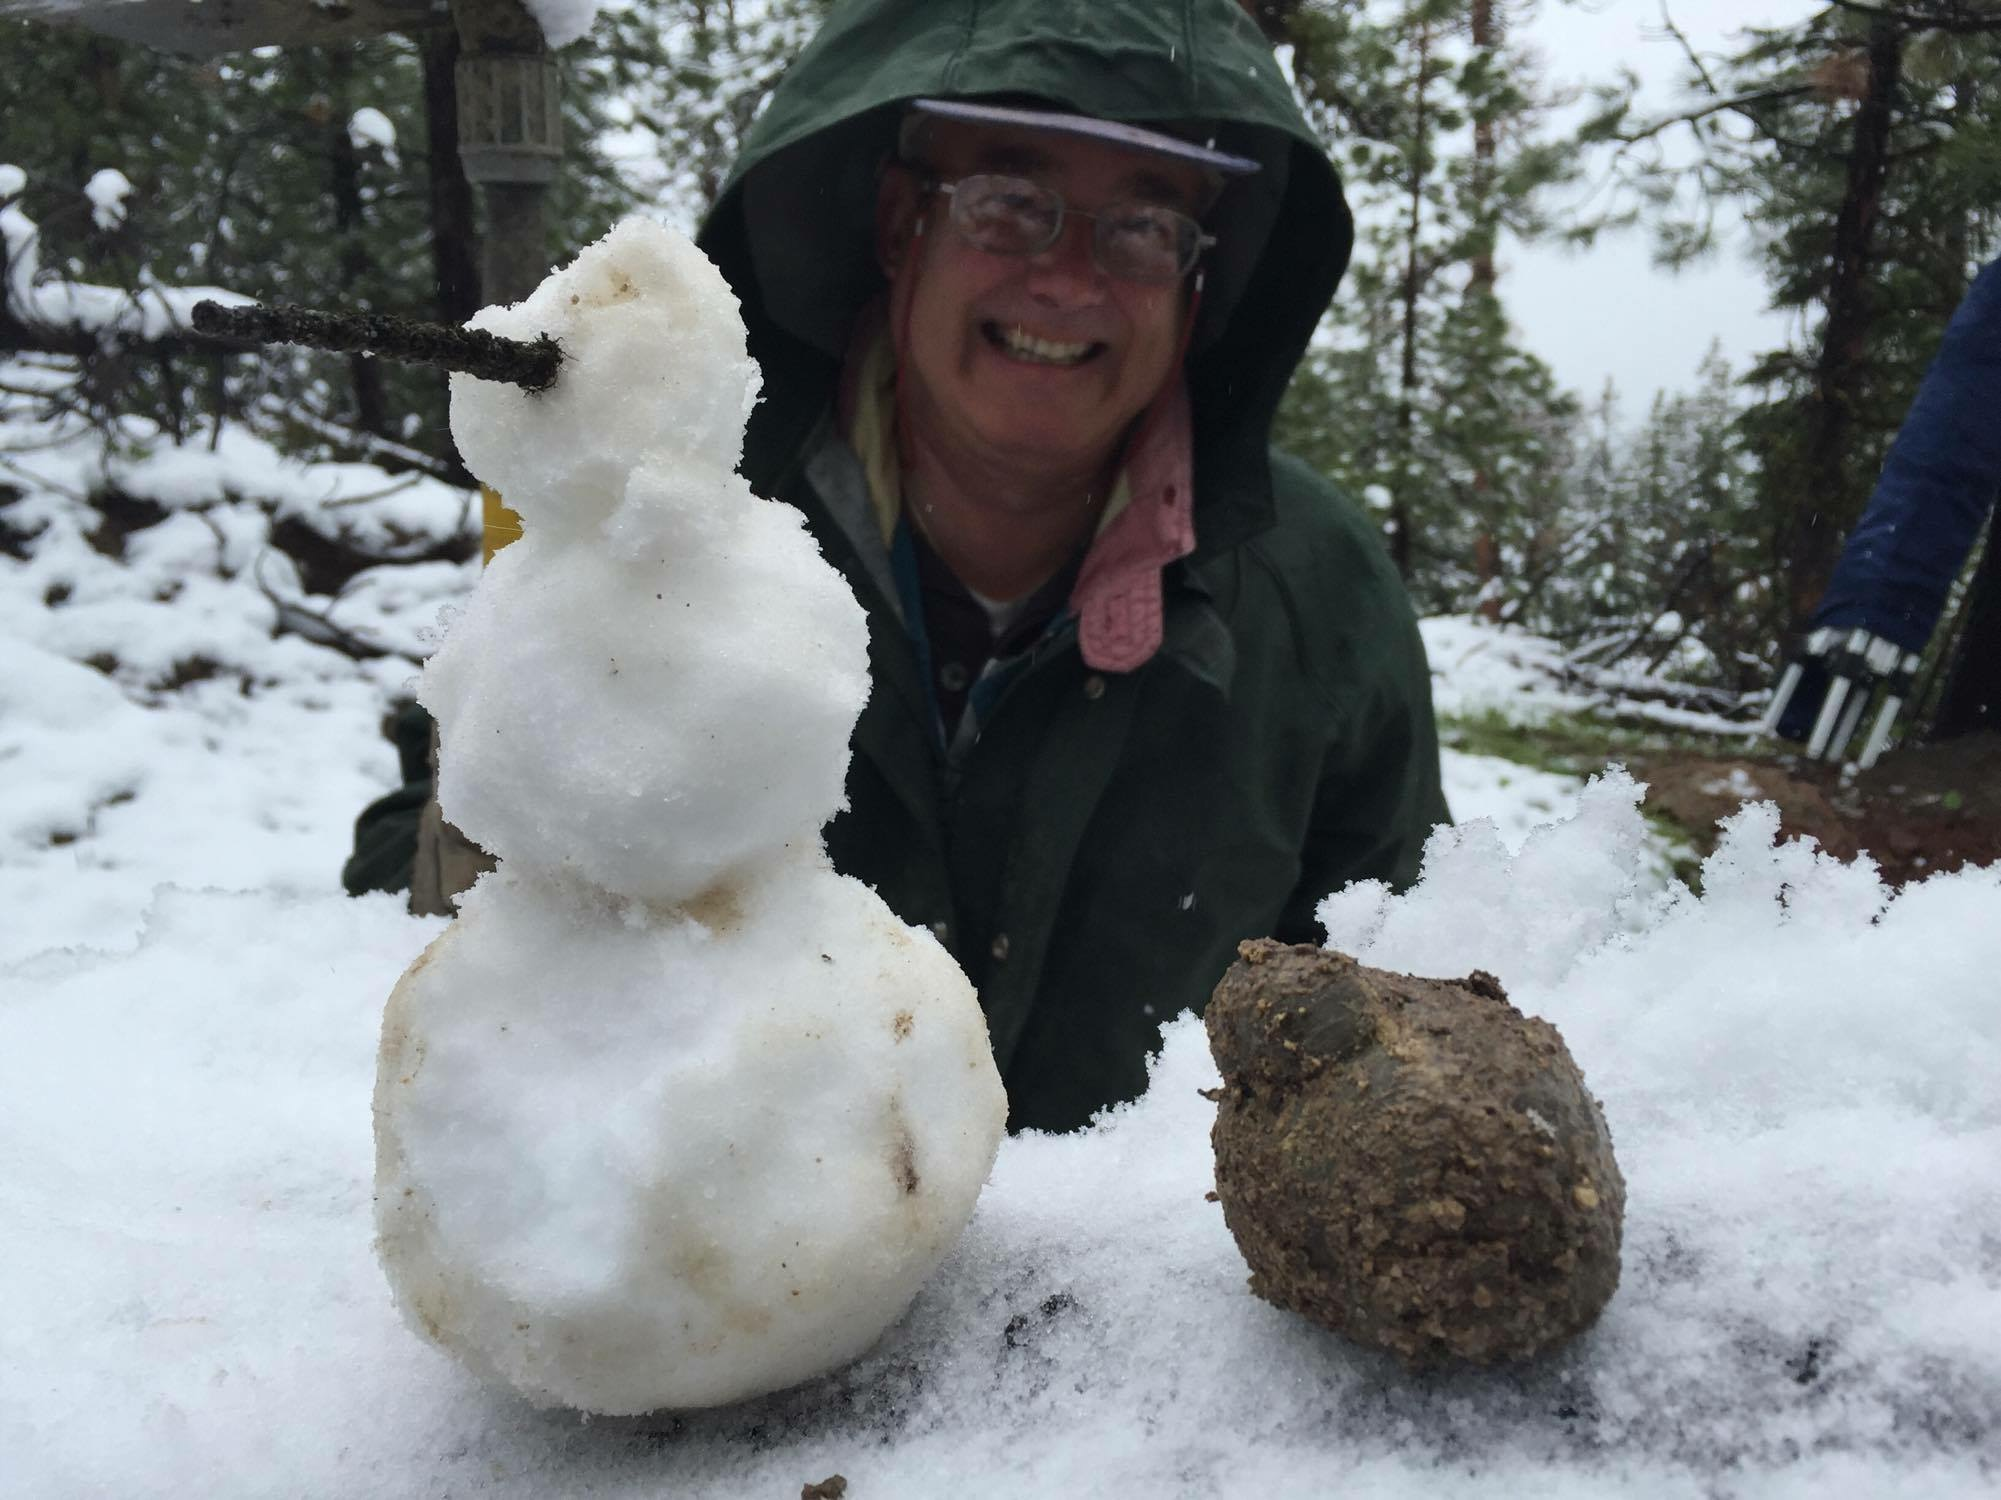 Snow digging is possible at Mud Ball Bed in Oregon summer